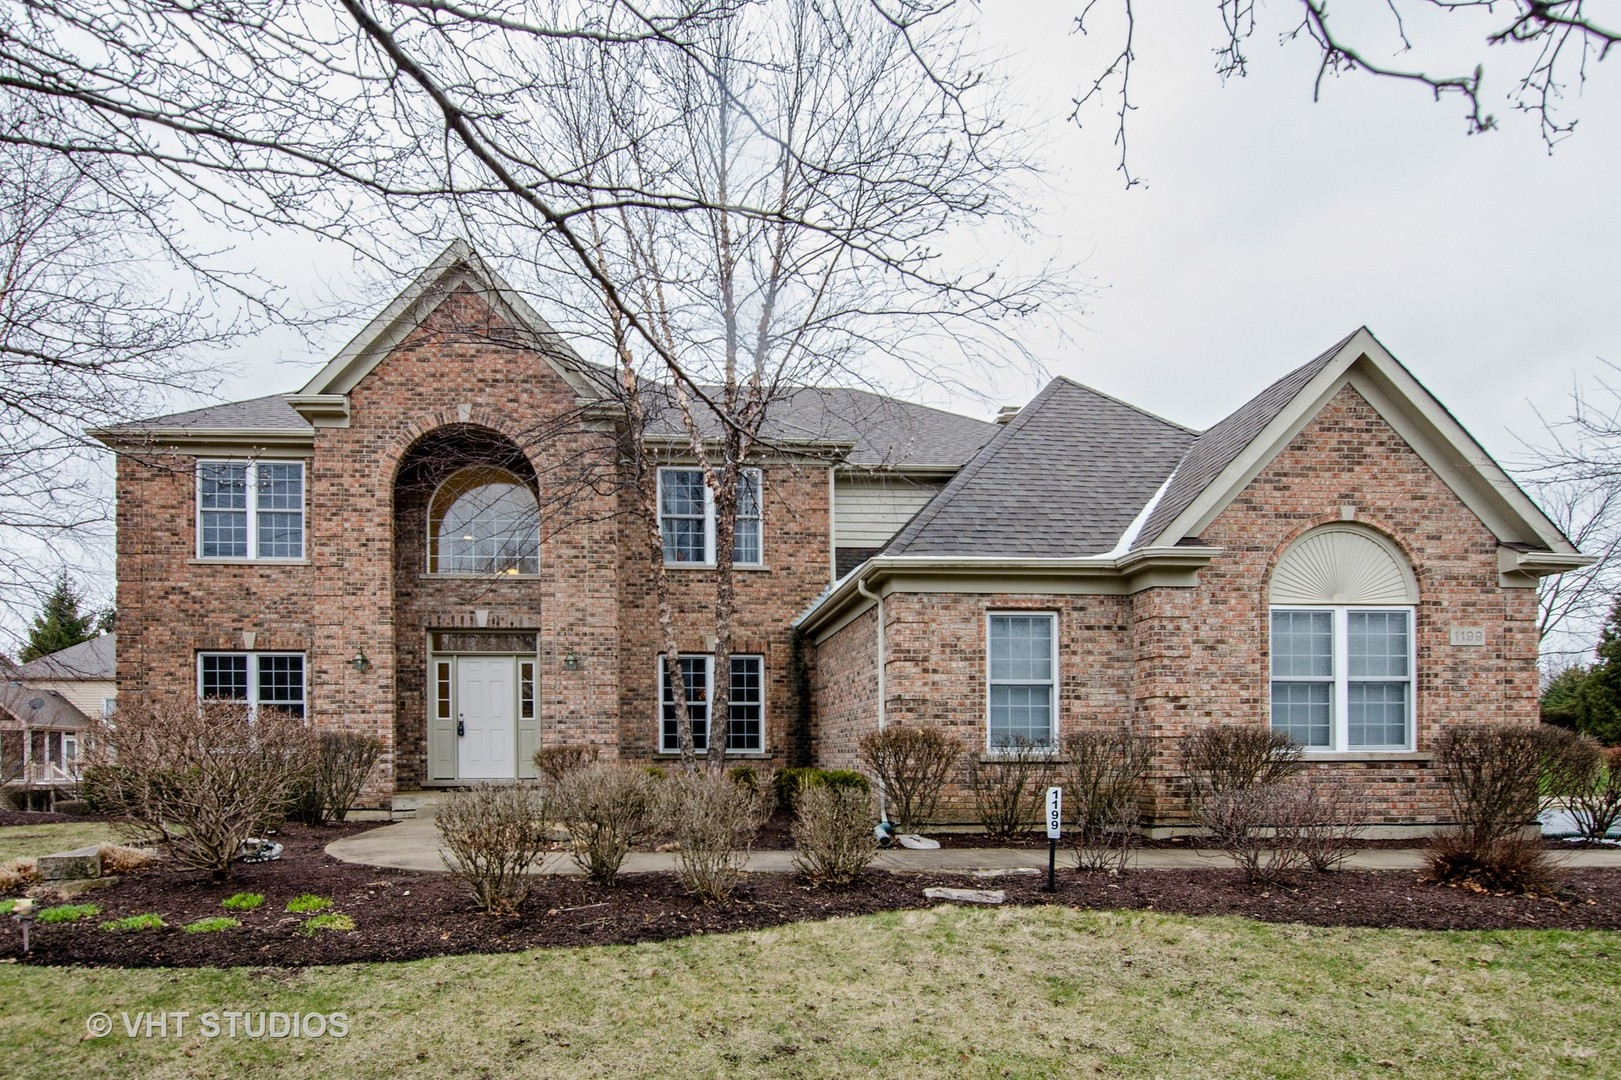 Property for sale at 1199 Ridgewood Circle, Lake In The Hills,  IL 60156